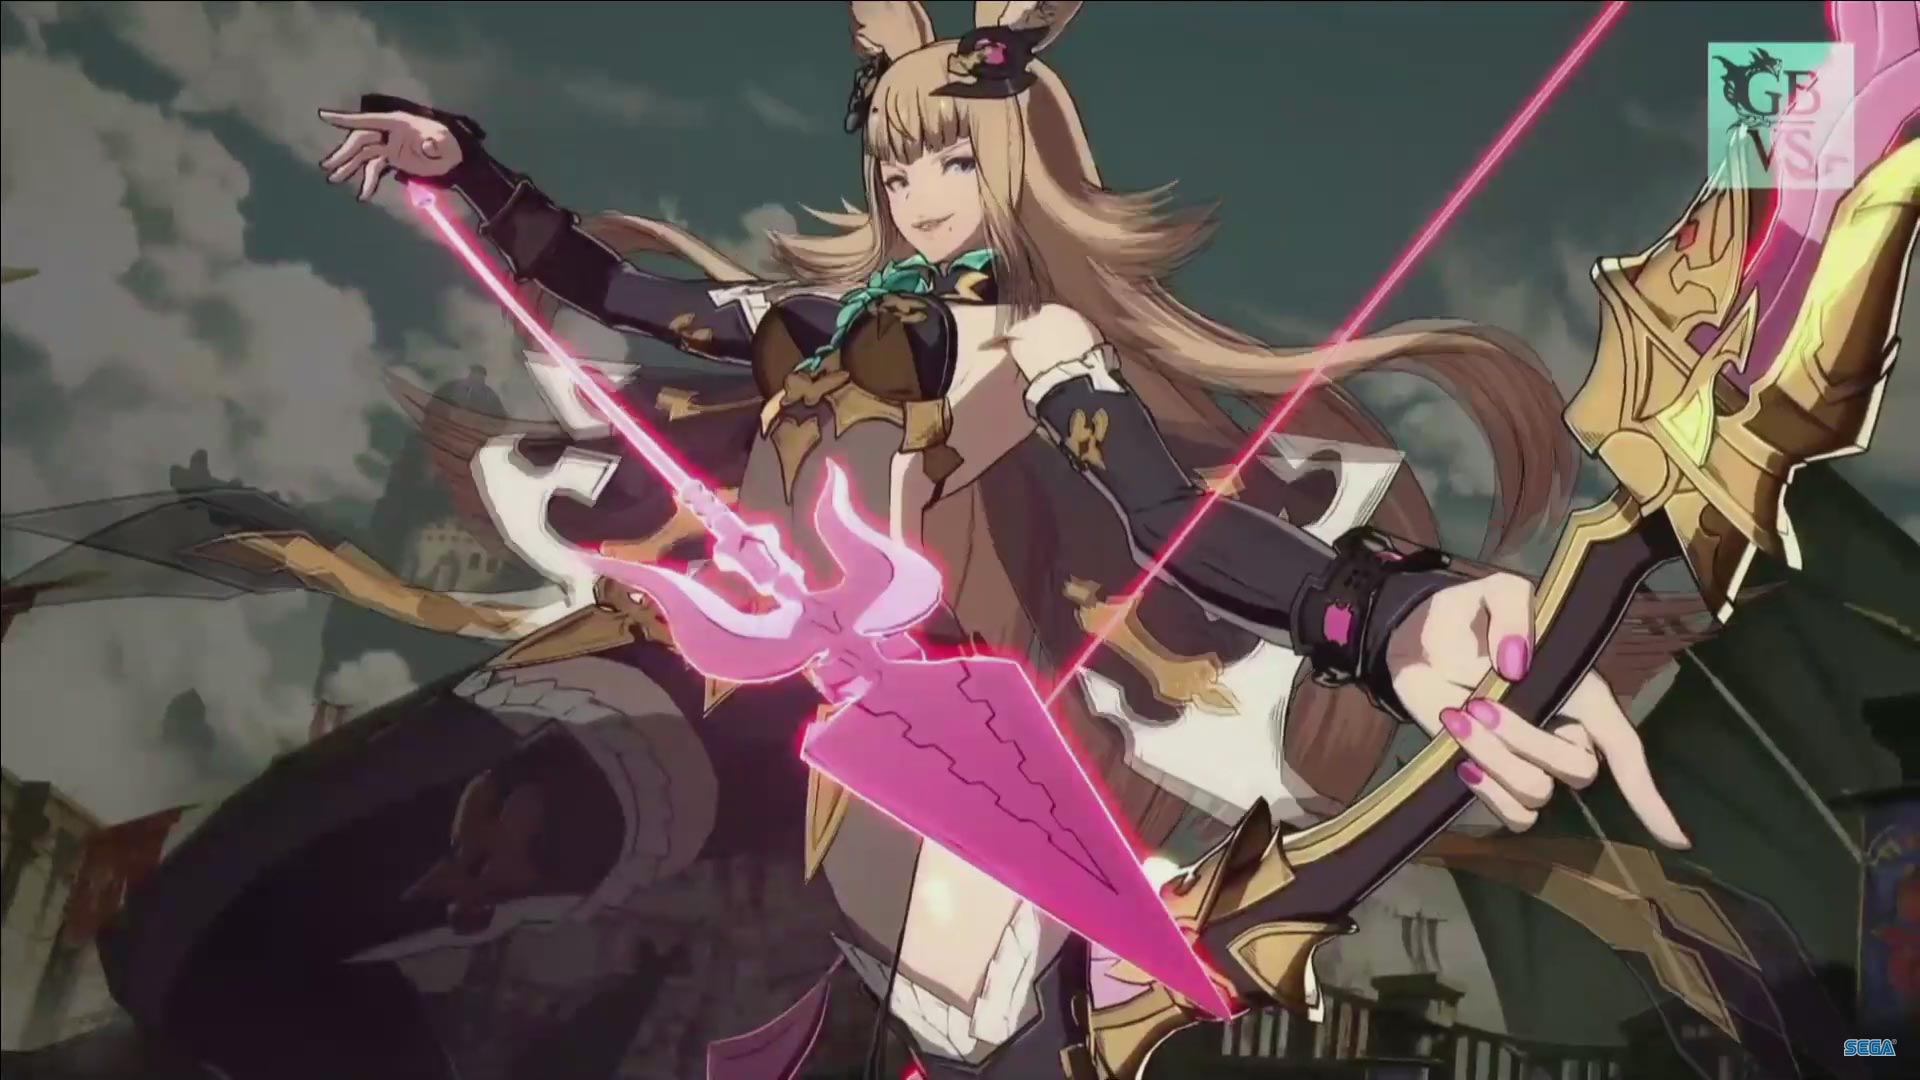 GranBlue Fantasy Versus Metera Reveal Images 6 out of 9 image gallery